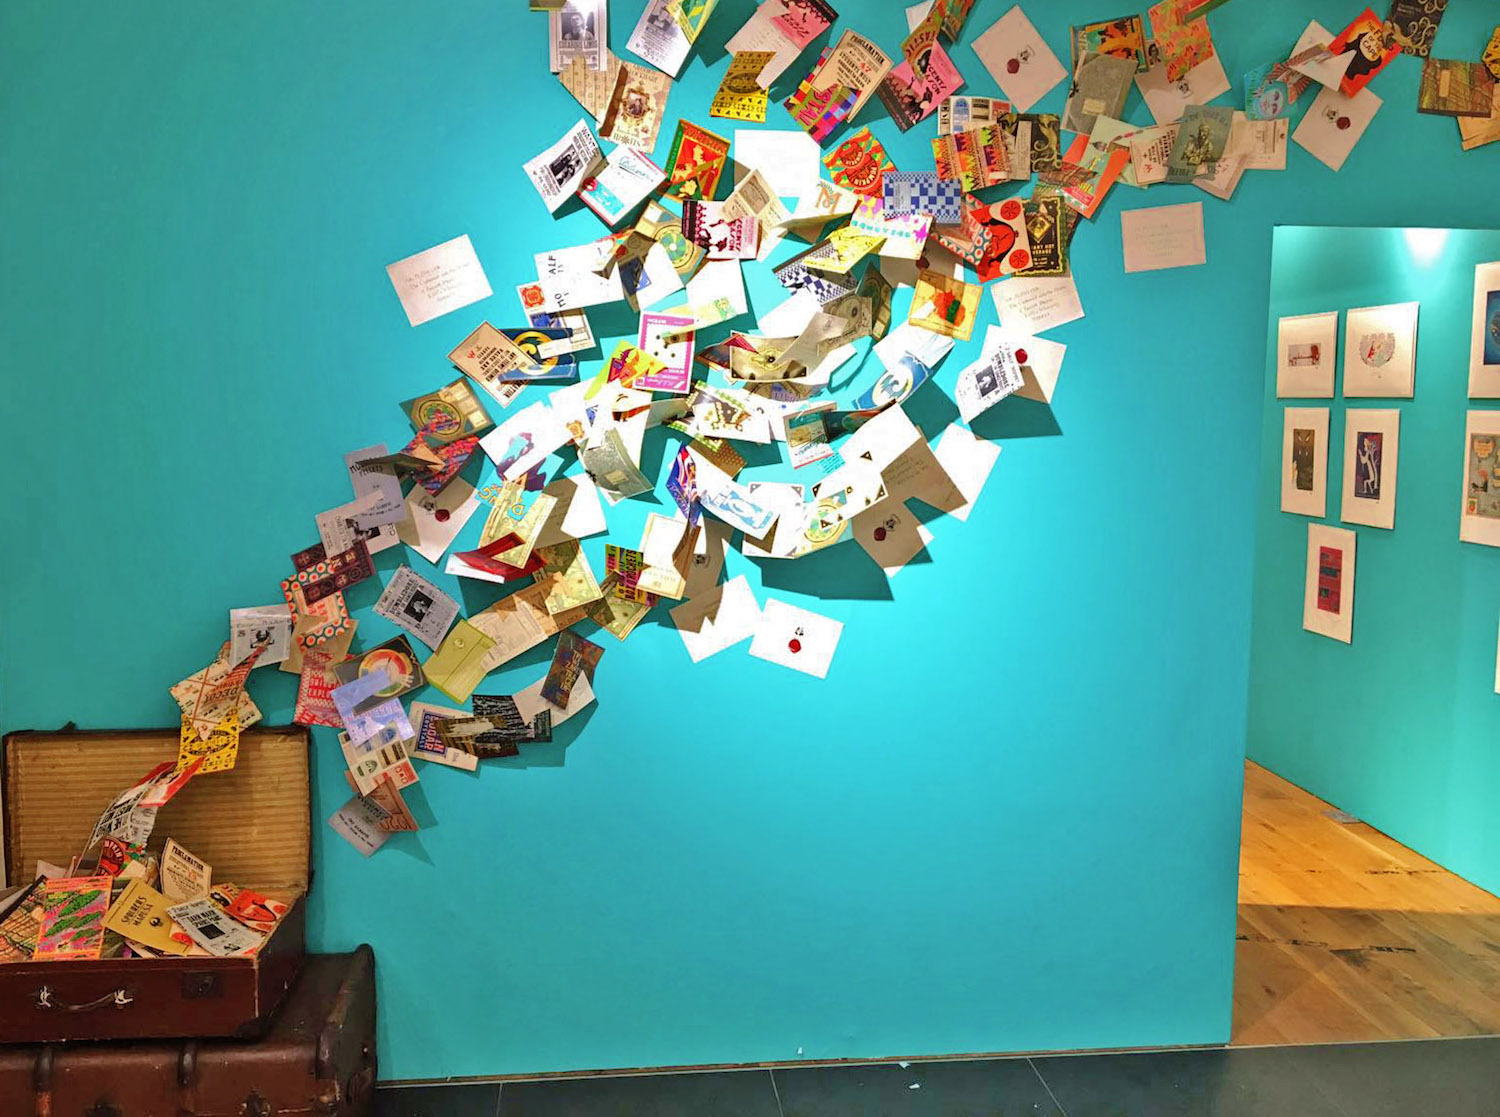 A fun installation covers one wall. It's a suitcase with wizarding world pamphlets flying out of it.